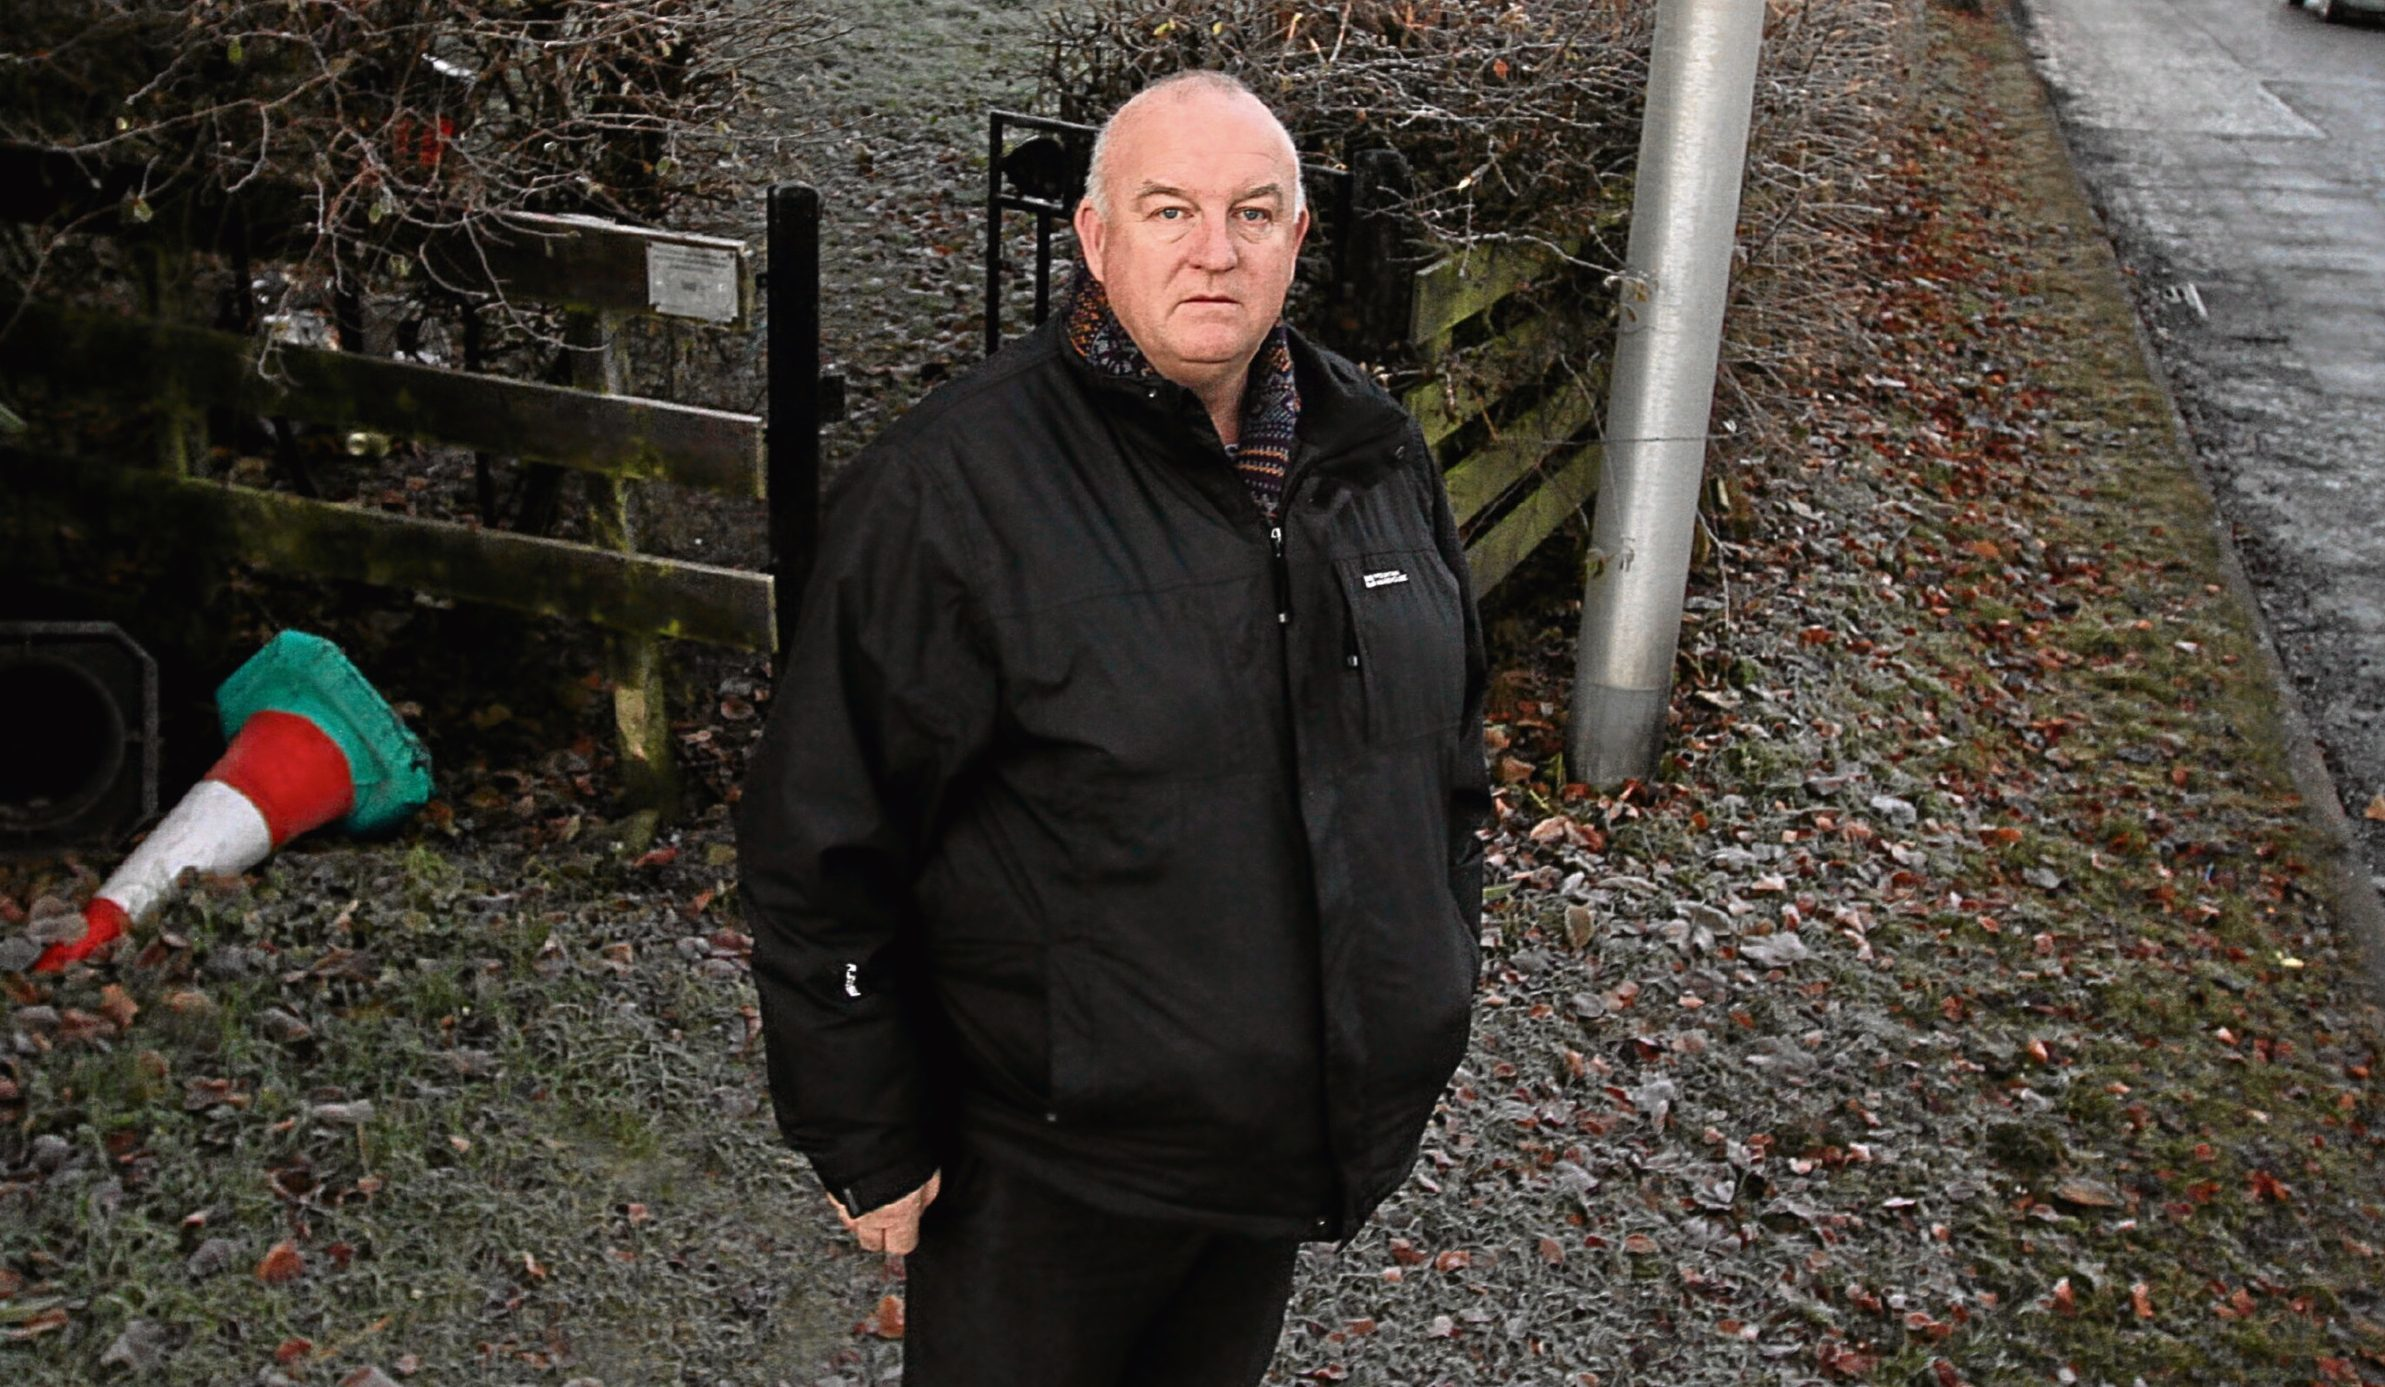 Councillor Kevin Keenan believes the dumped needles pose a risk of spreading infection.